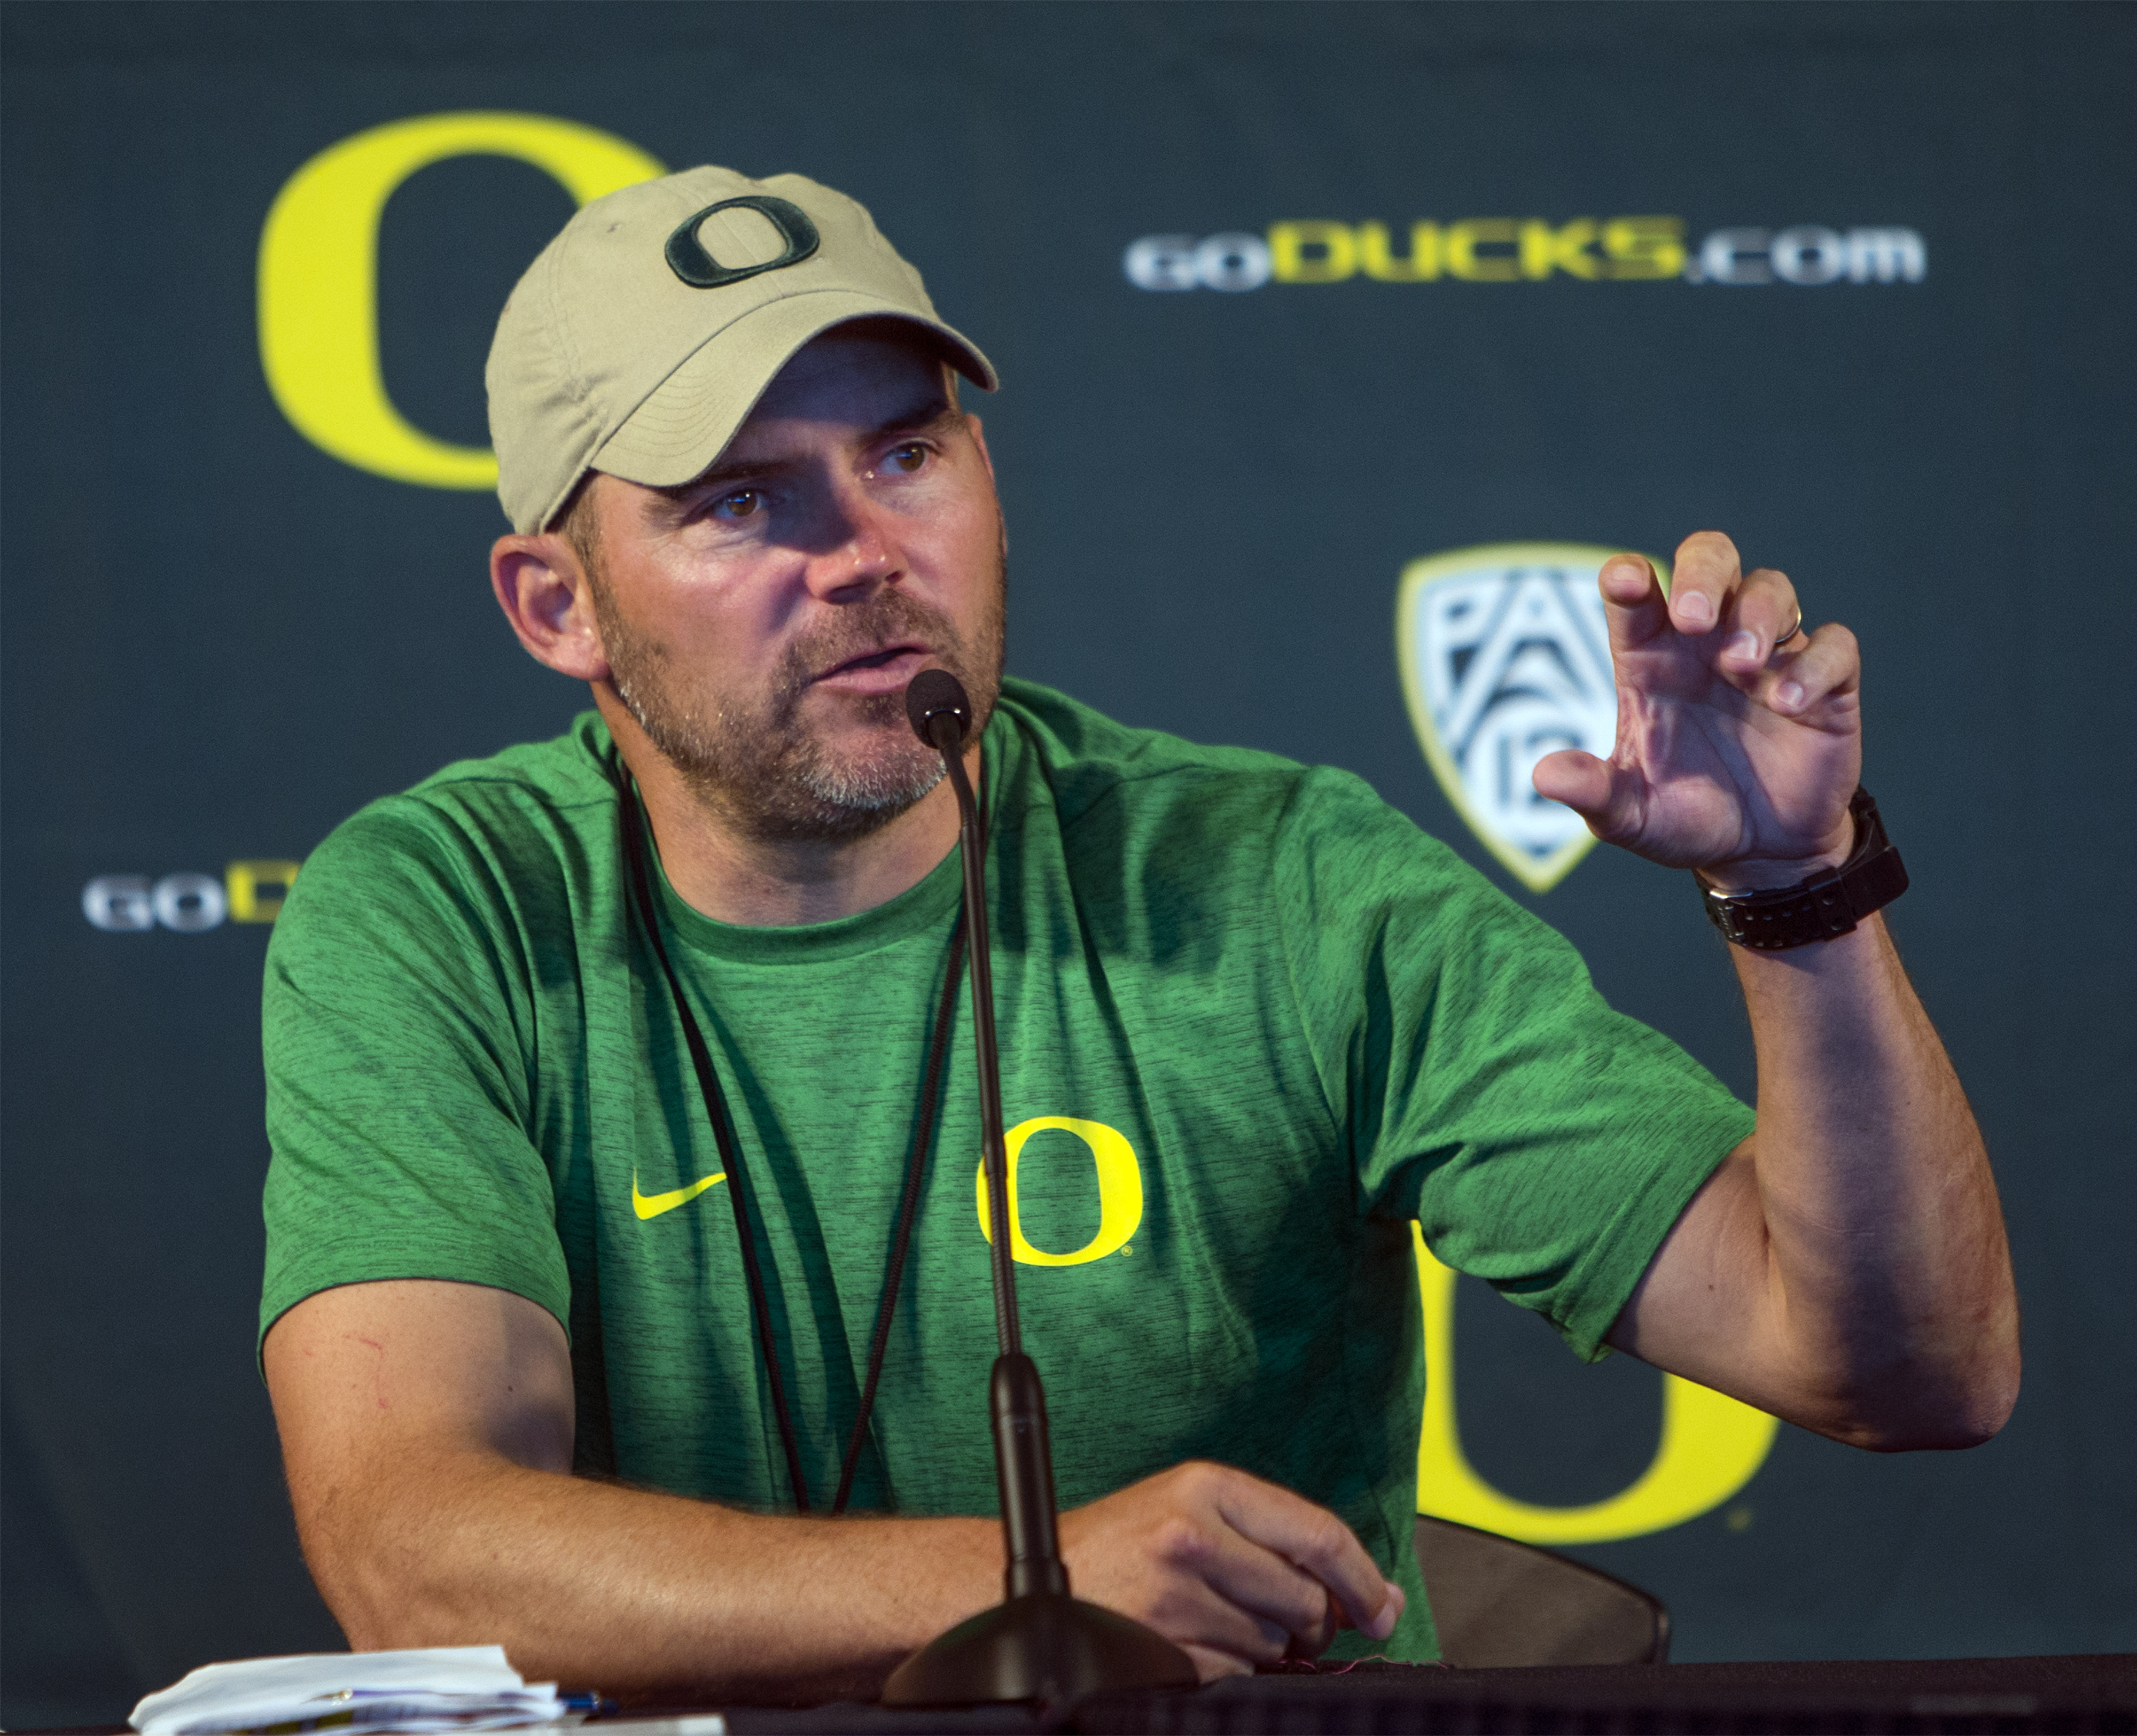 Oregon head coach Mark Helfrich answers questions from members of the media during Oregon NCAA football media day at Autzen Stadium in Eugene, Ore., Monday, Aug. 8, 2016. Helfrich's team enters the season ranked 22nd in the Associated Press college footba